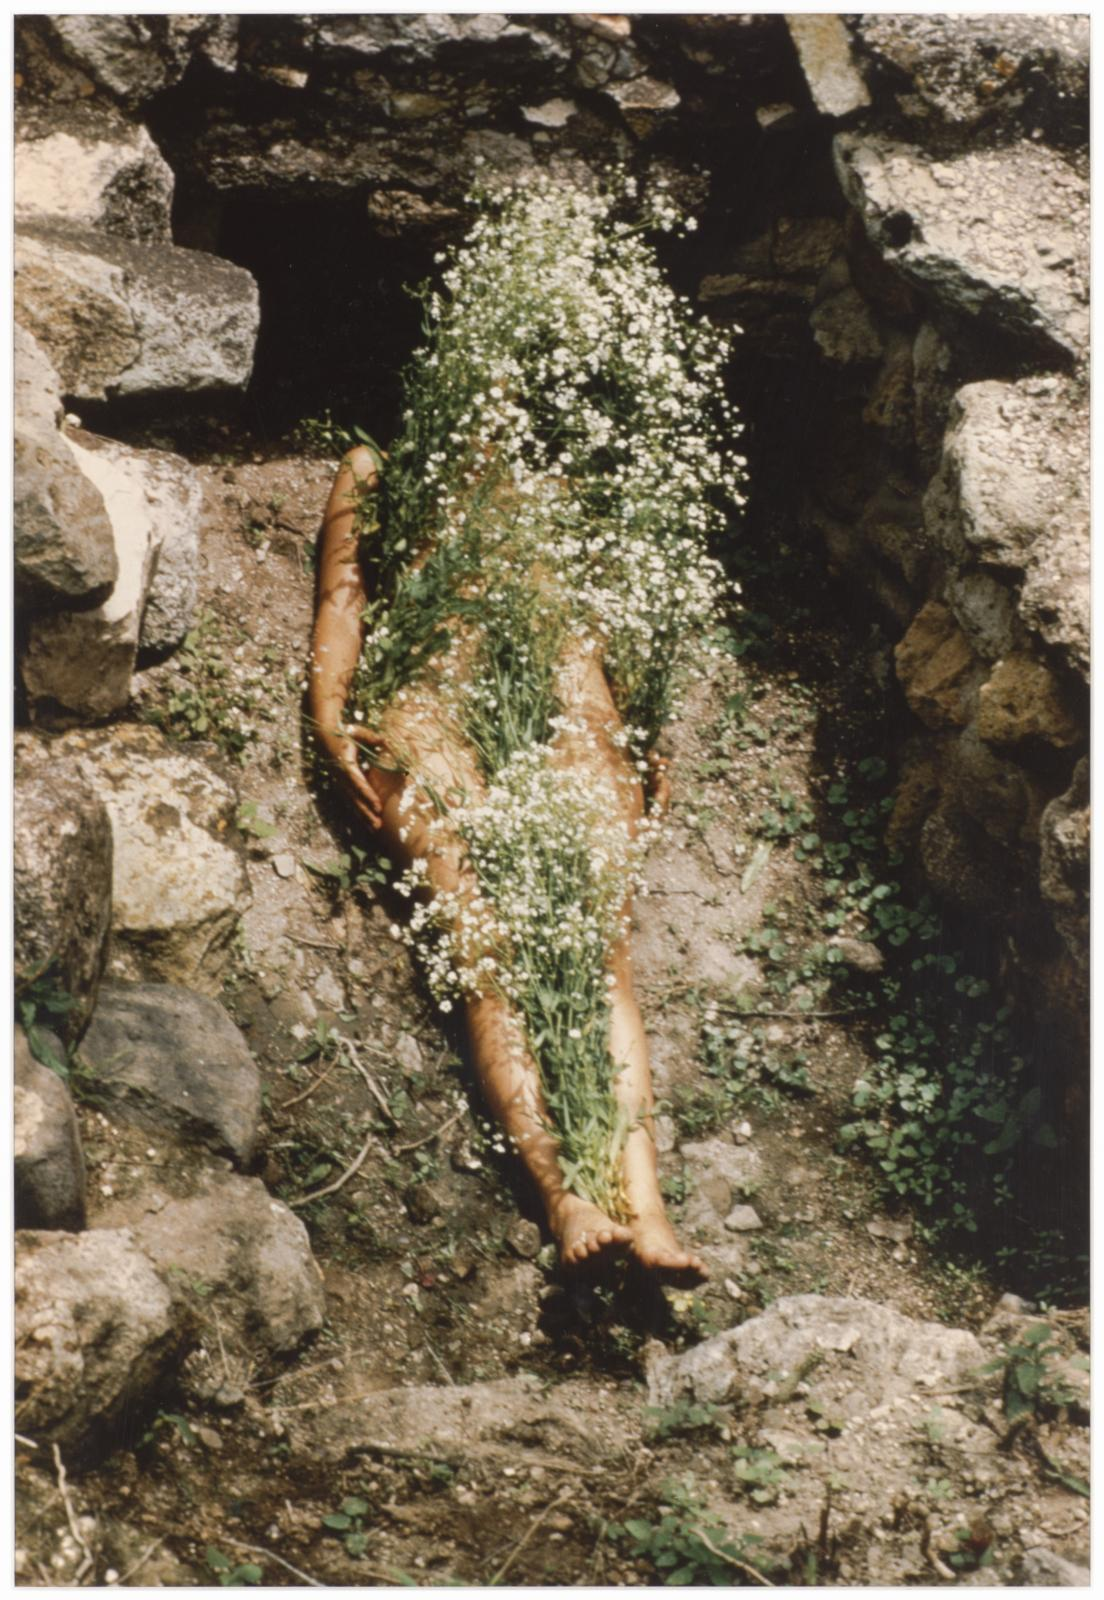 A person lays down in a stone-lined grave with flowers covering their body.